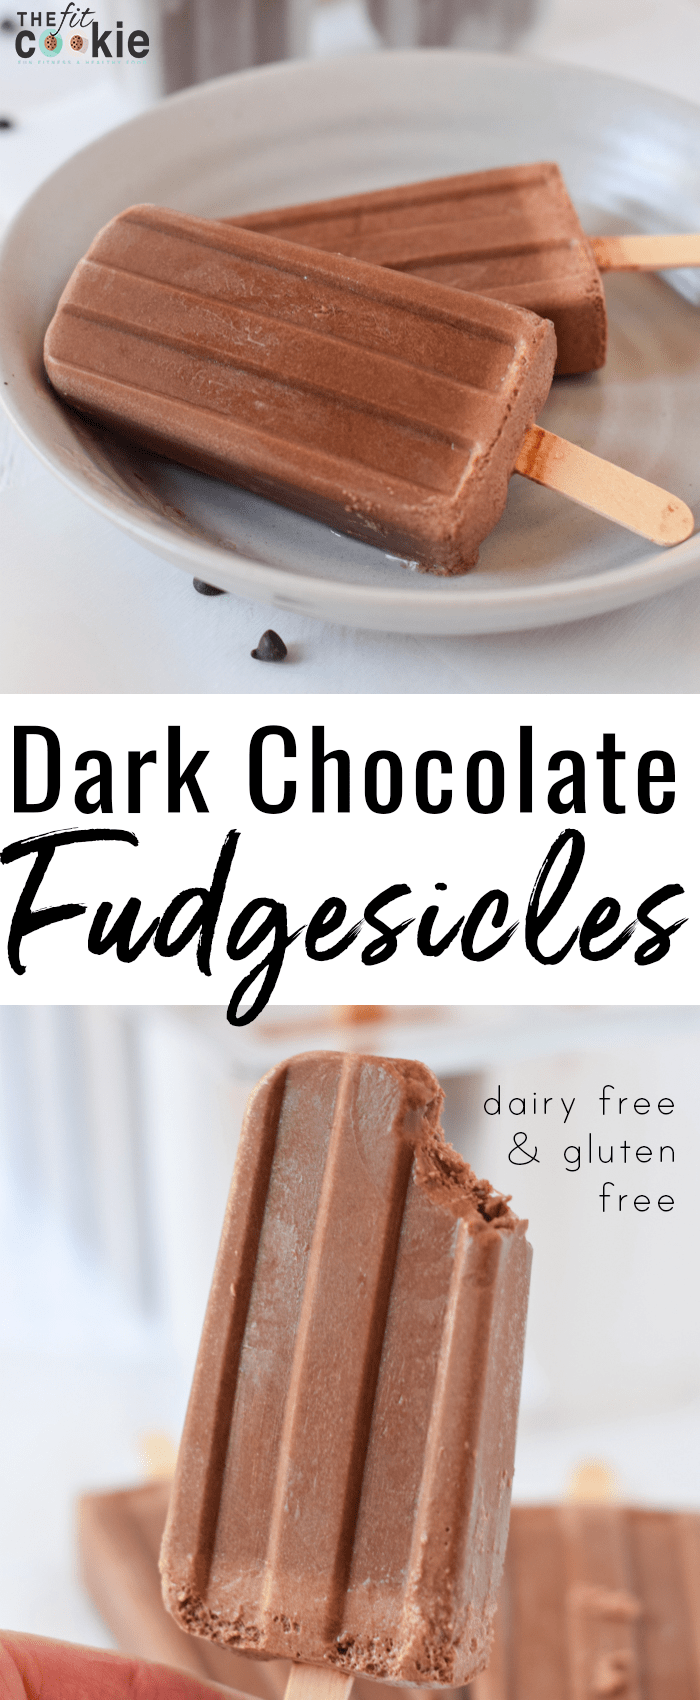 Craving a chocolatey frozen treat? Make these dairy free, soy free, and peanut free Dark Chocolate Popsicles (aka Fudgesicles) for a cool treat that's healthier than store-bought - @TheFitCookie #dairyfree #grainfree #glutenfree #popsicles